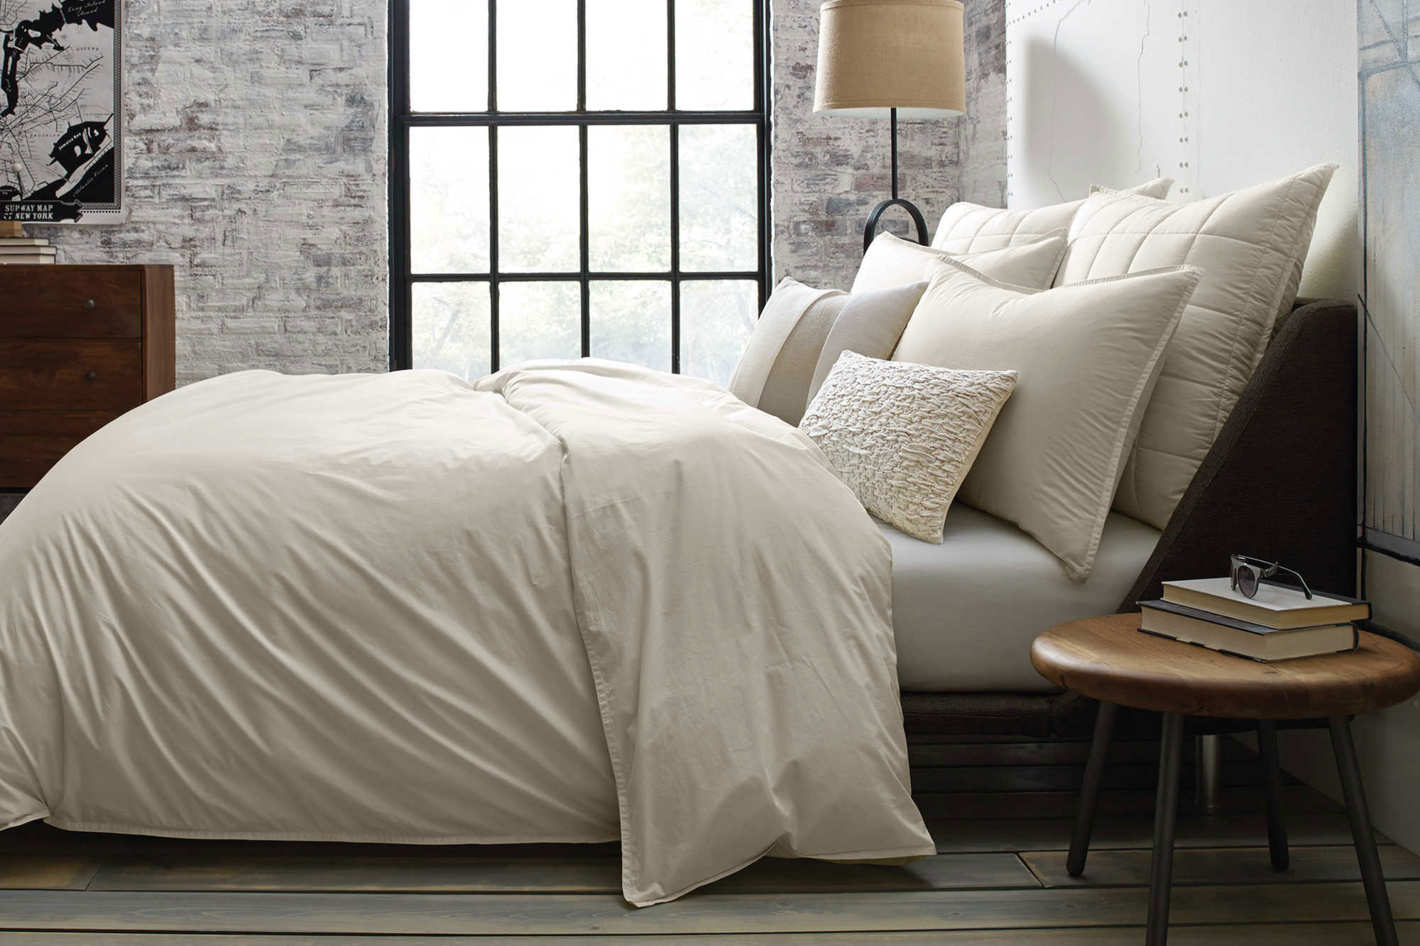 Soft Duvet Covers Kenneth Cole Escape Duvet Cover In Stone Full Queen